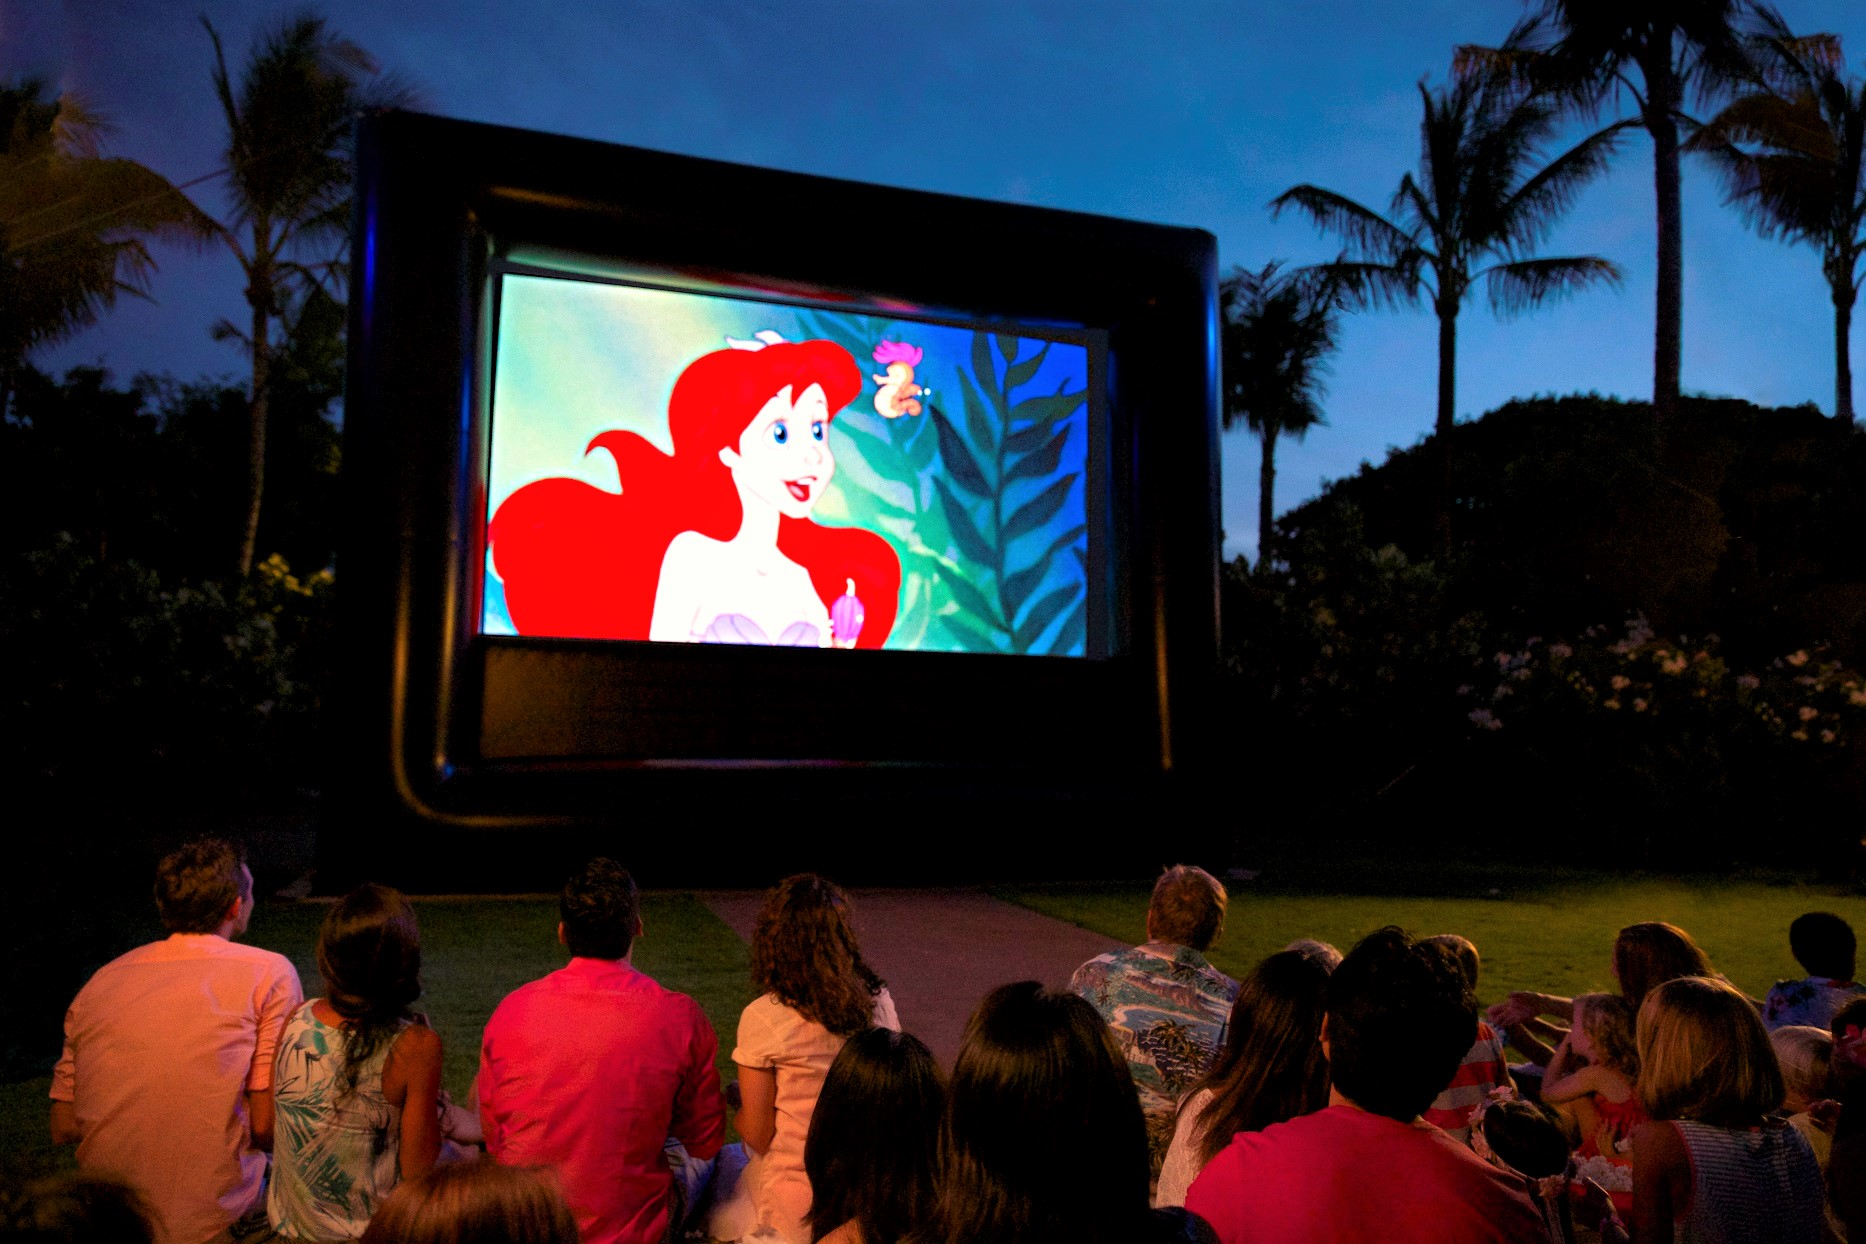 You can watch Disney movies under the stars